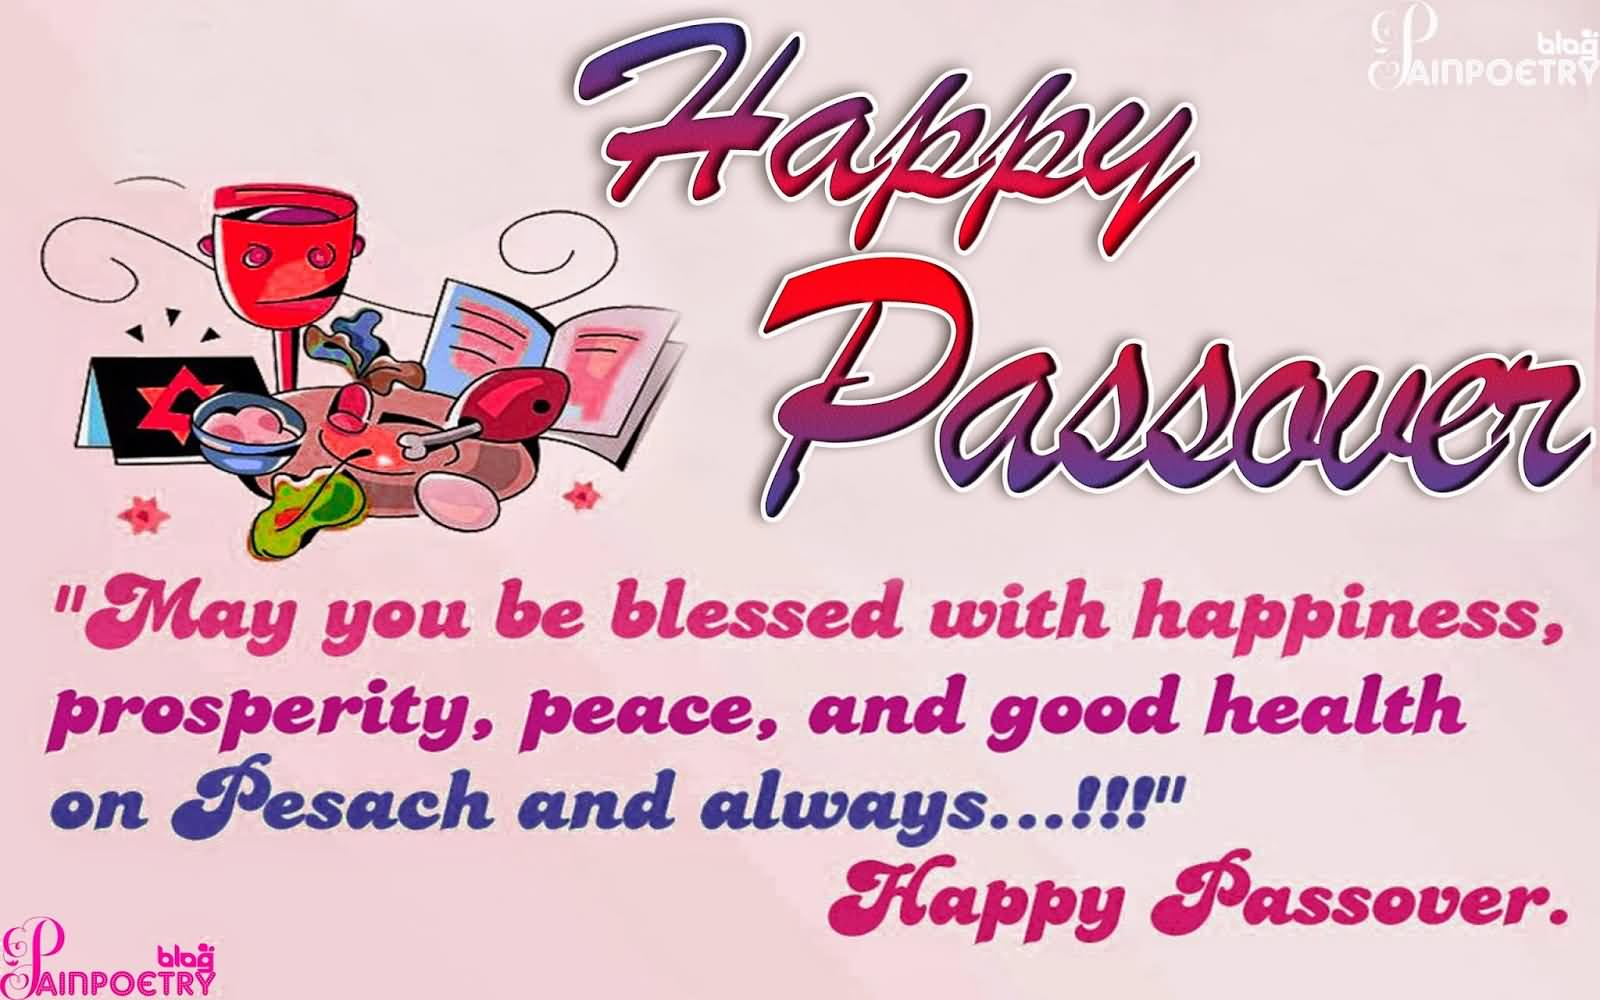 33 beautiful passover images wishes pictures photos picsmine happy passover wishes greetings message image m4hsunfo